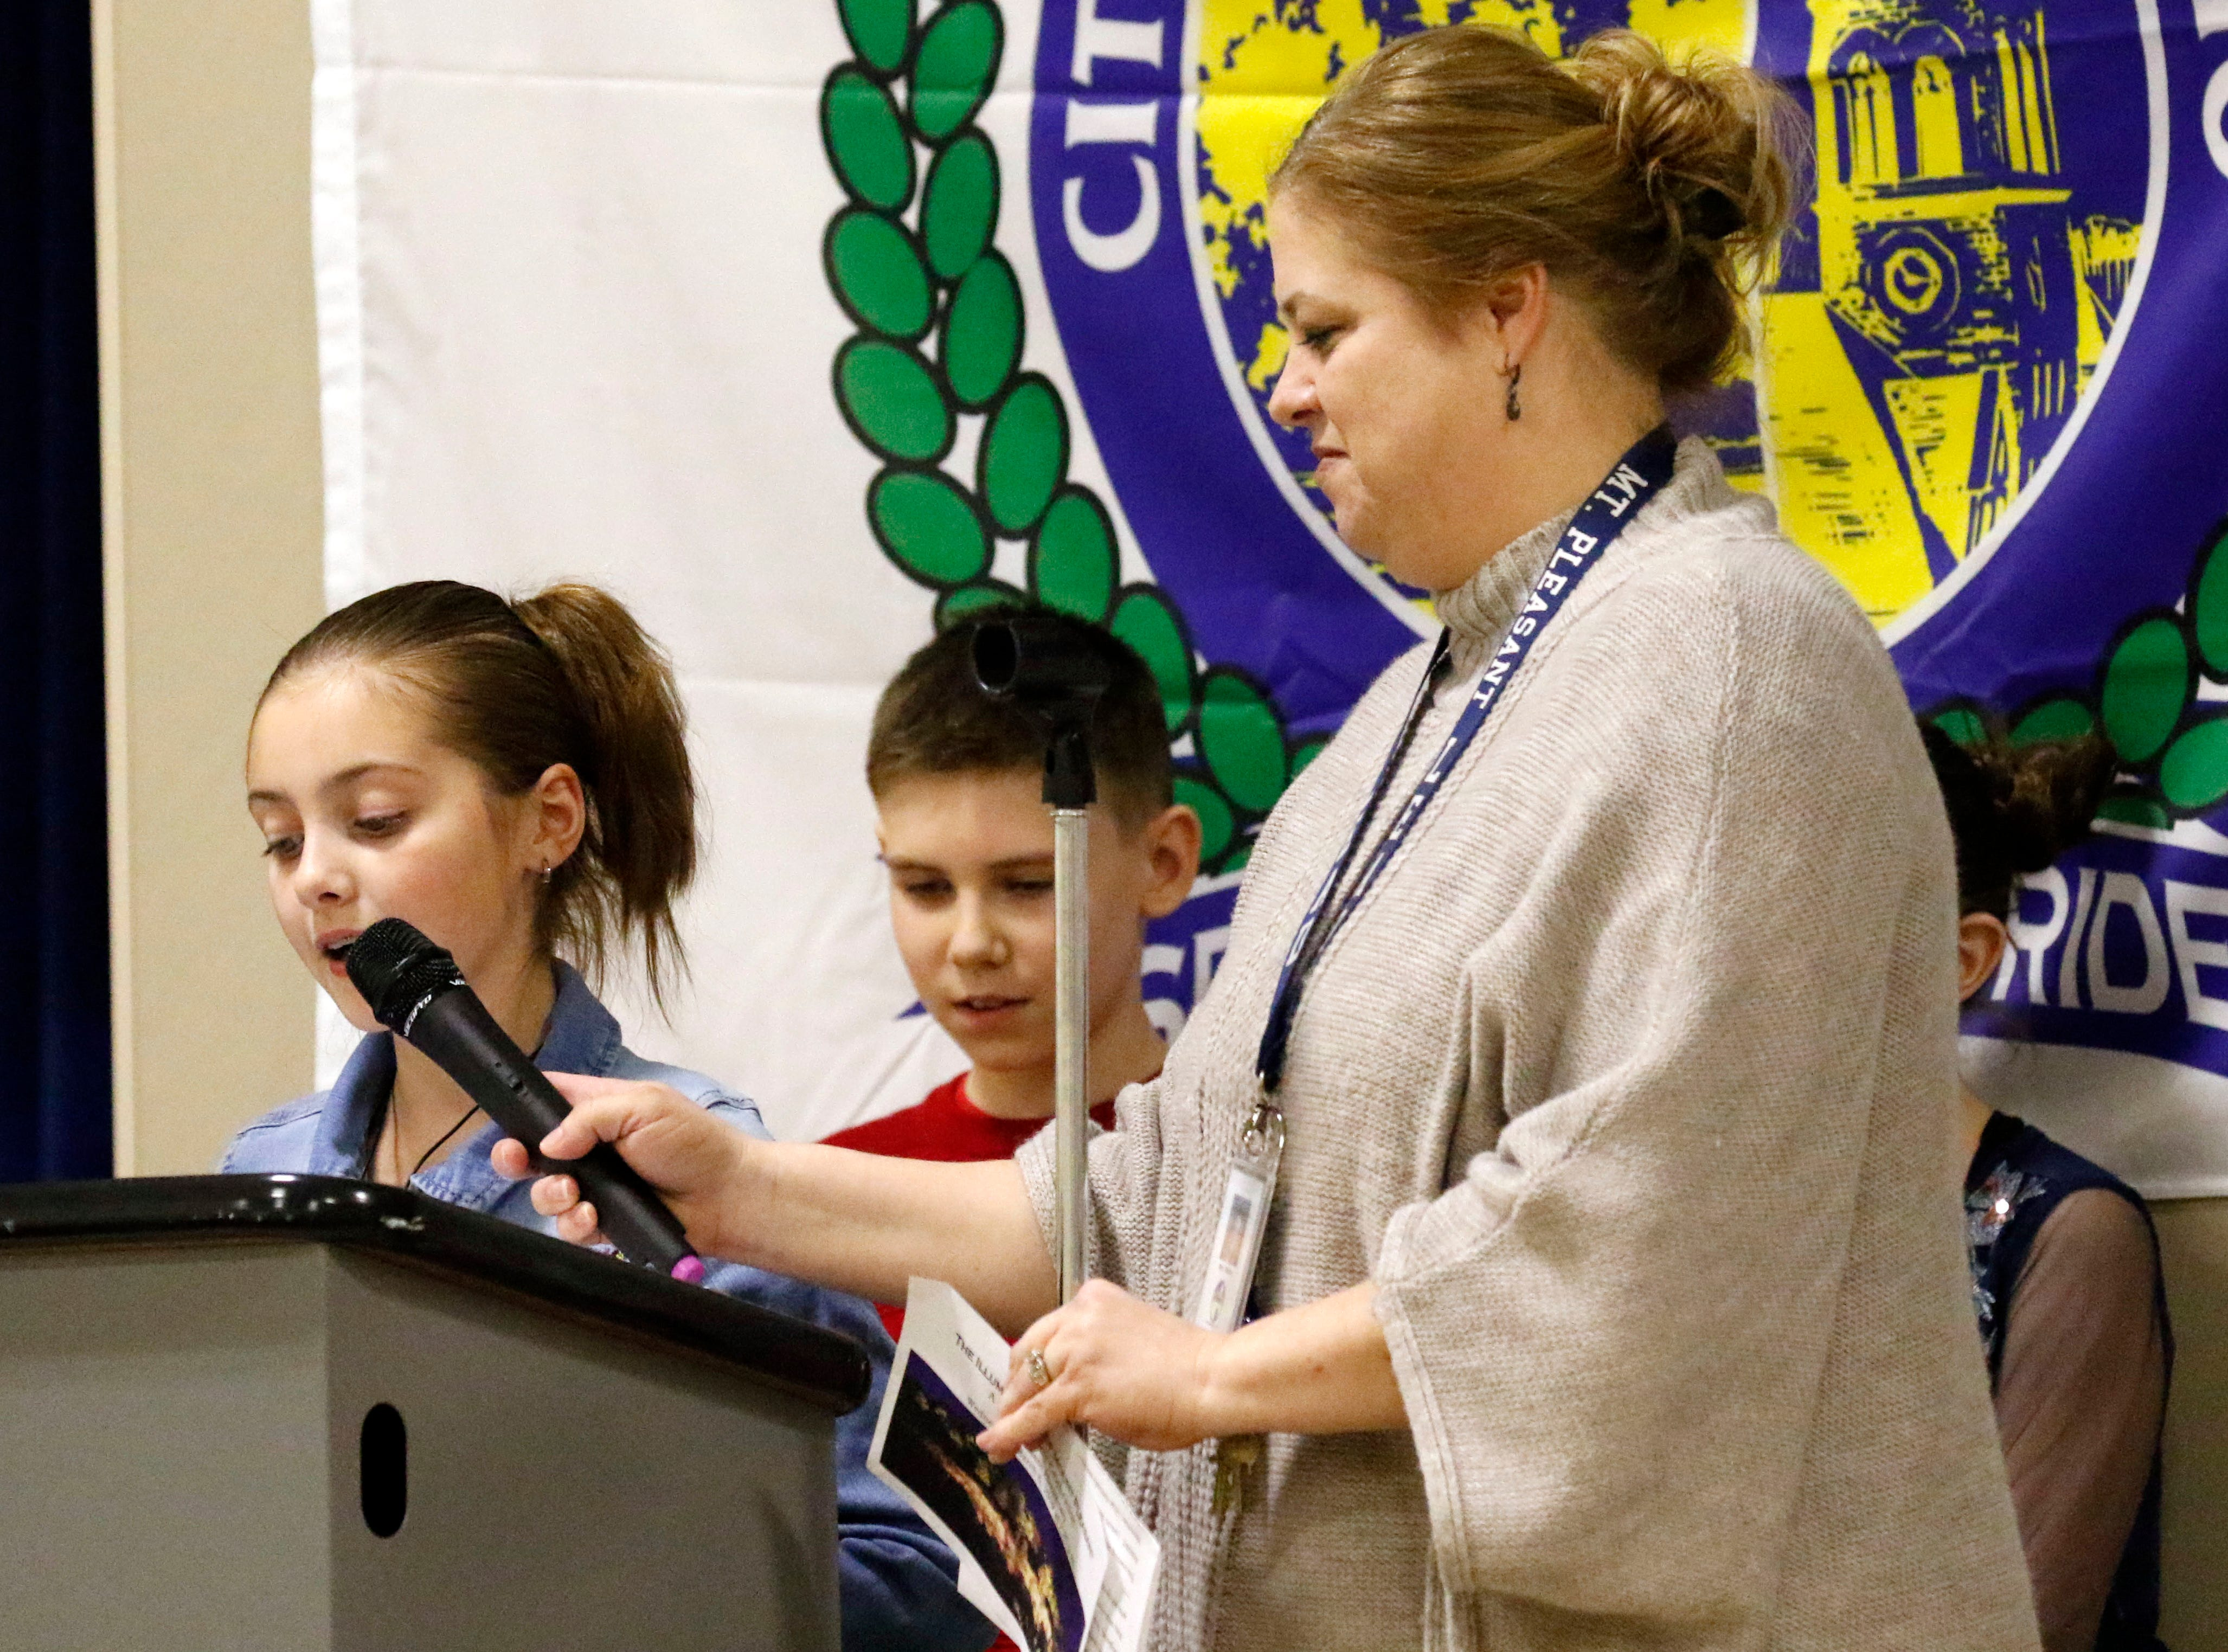 Mount Pleasant Elementary students speak during a ceremony to celebrate the lighting of Mount Pleasant Wednesday, March 6, 2019, at Mount Pleasant Elementary in Lancaster.